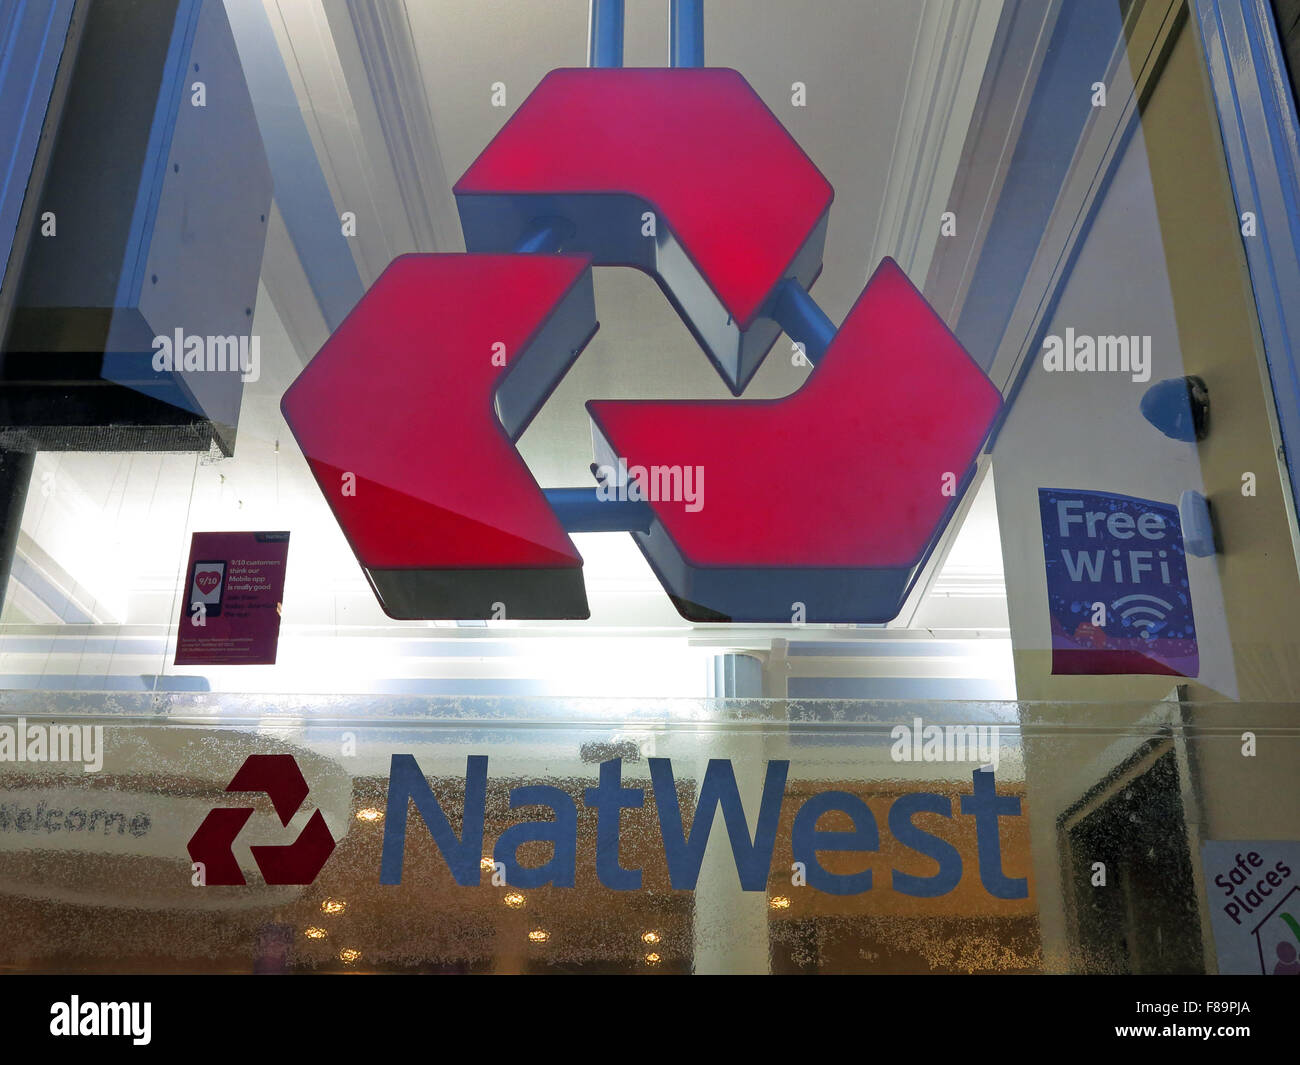 Natwest branch logo with free wifi window, Warrington, Cheshire, England, UK - Stock Image